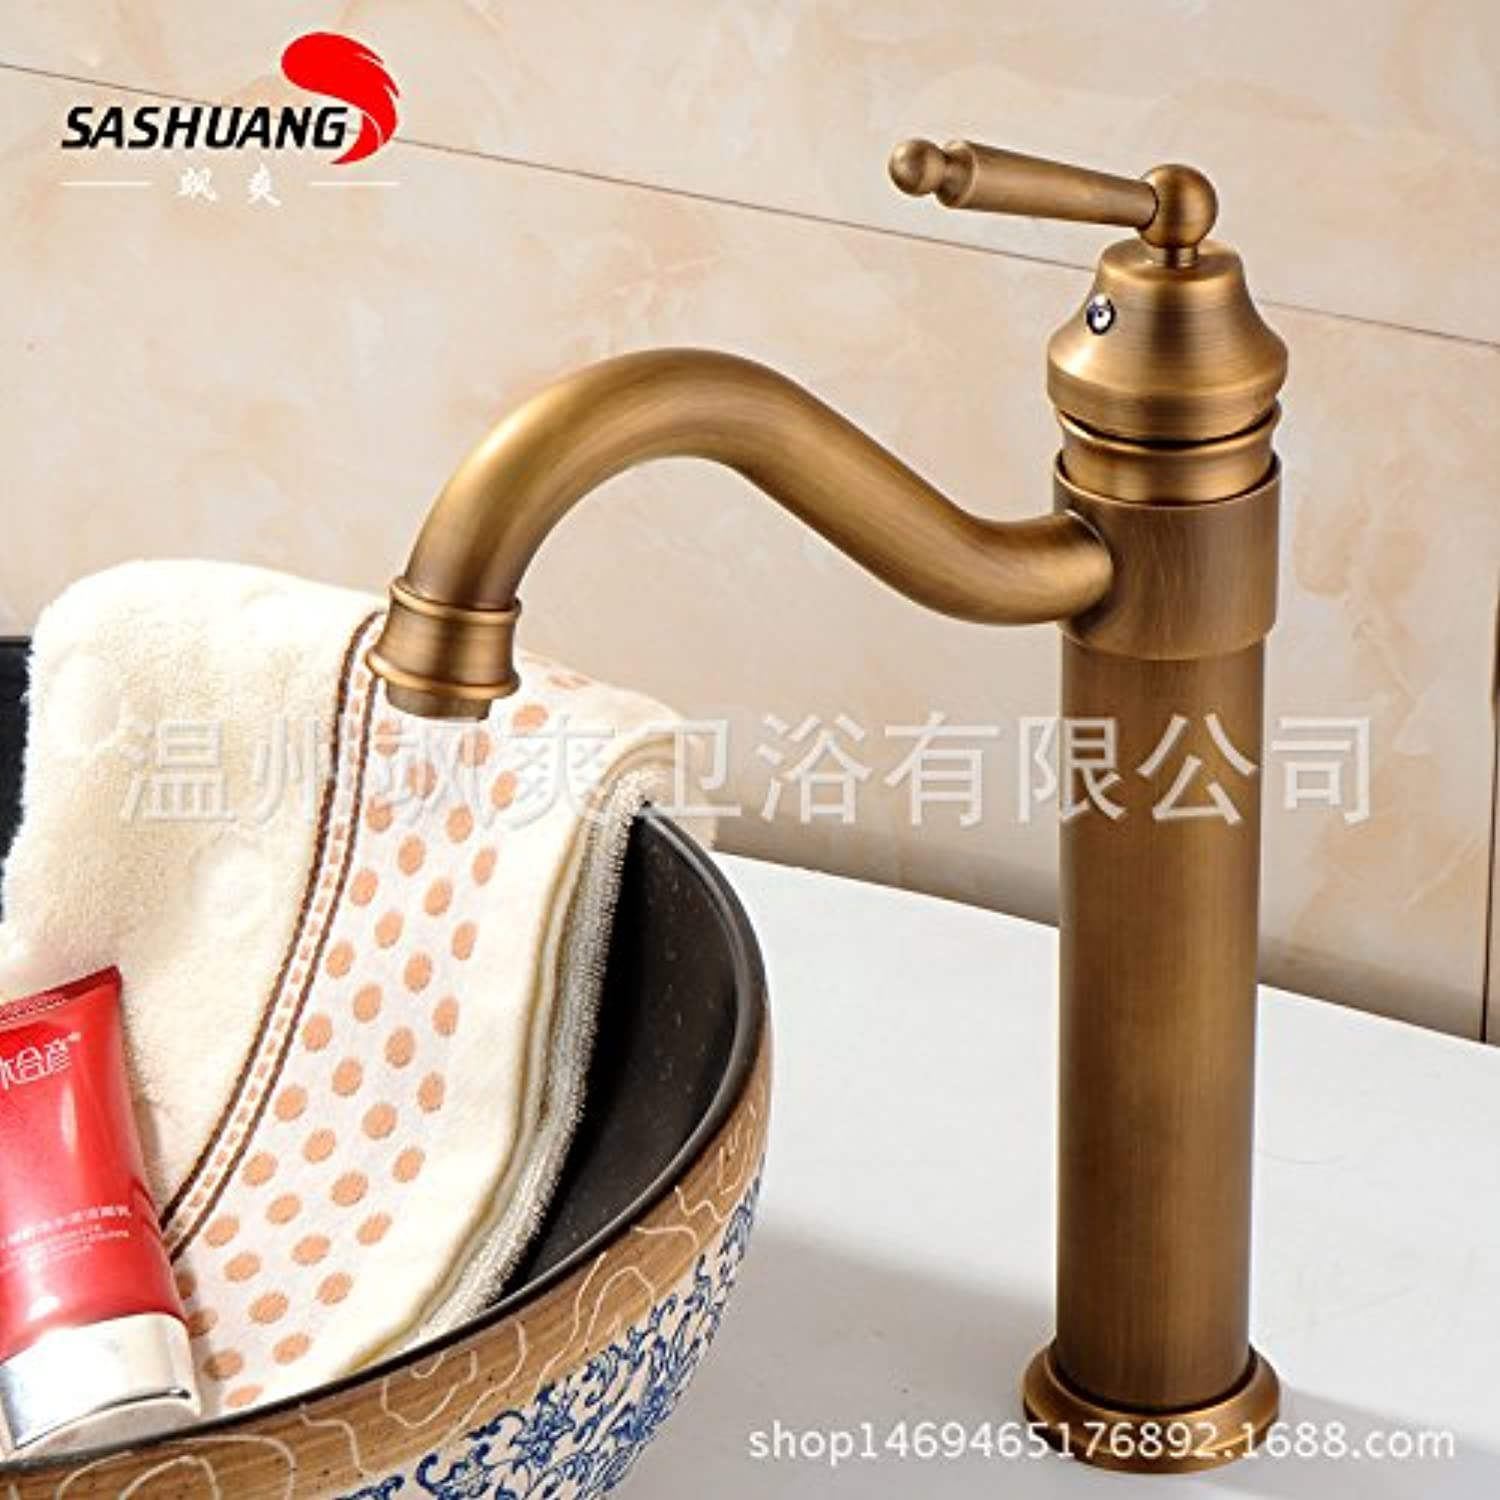 ETERNAL QUALITY Bathroom Sink Basin Tap Brass Mixer Tap Washroom Mixer Faucet Basin was cool antique table basin mixer with high basin 360° redation High s bend see d